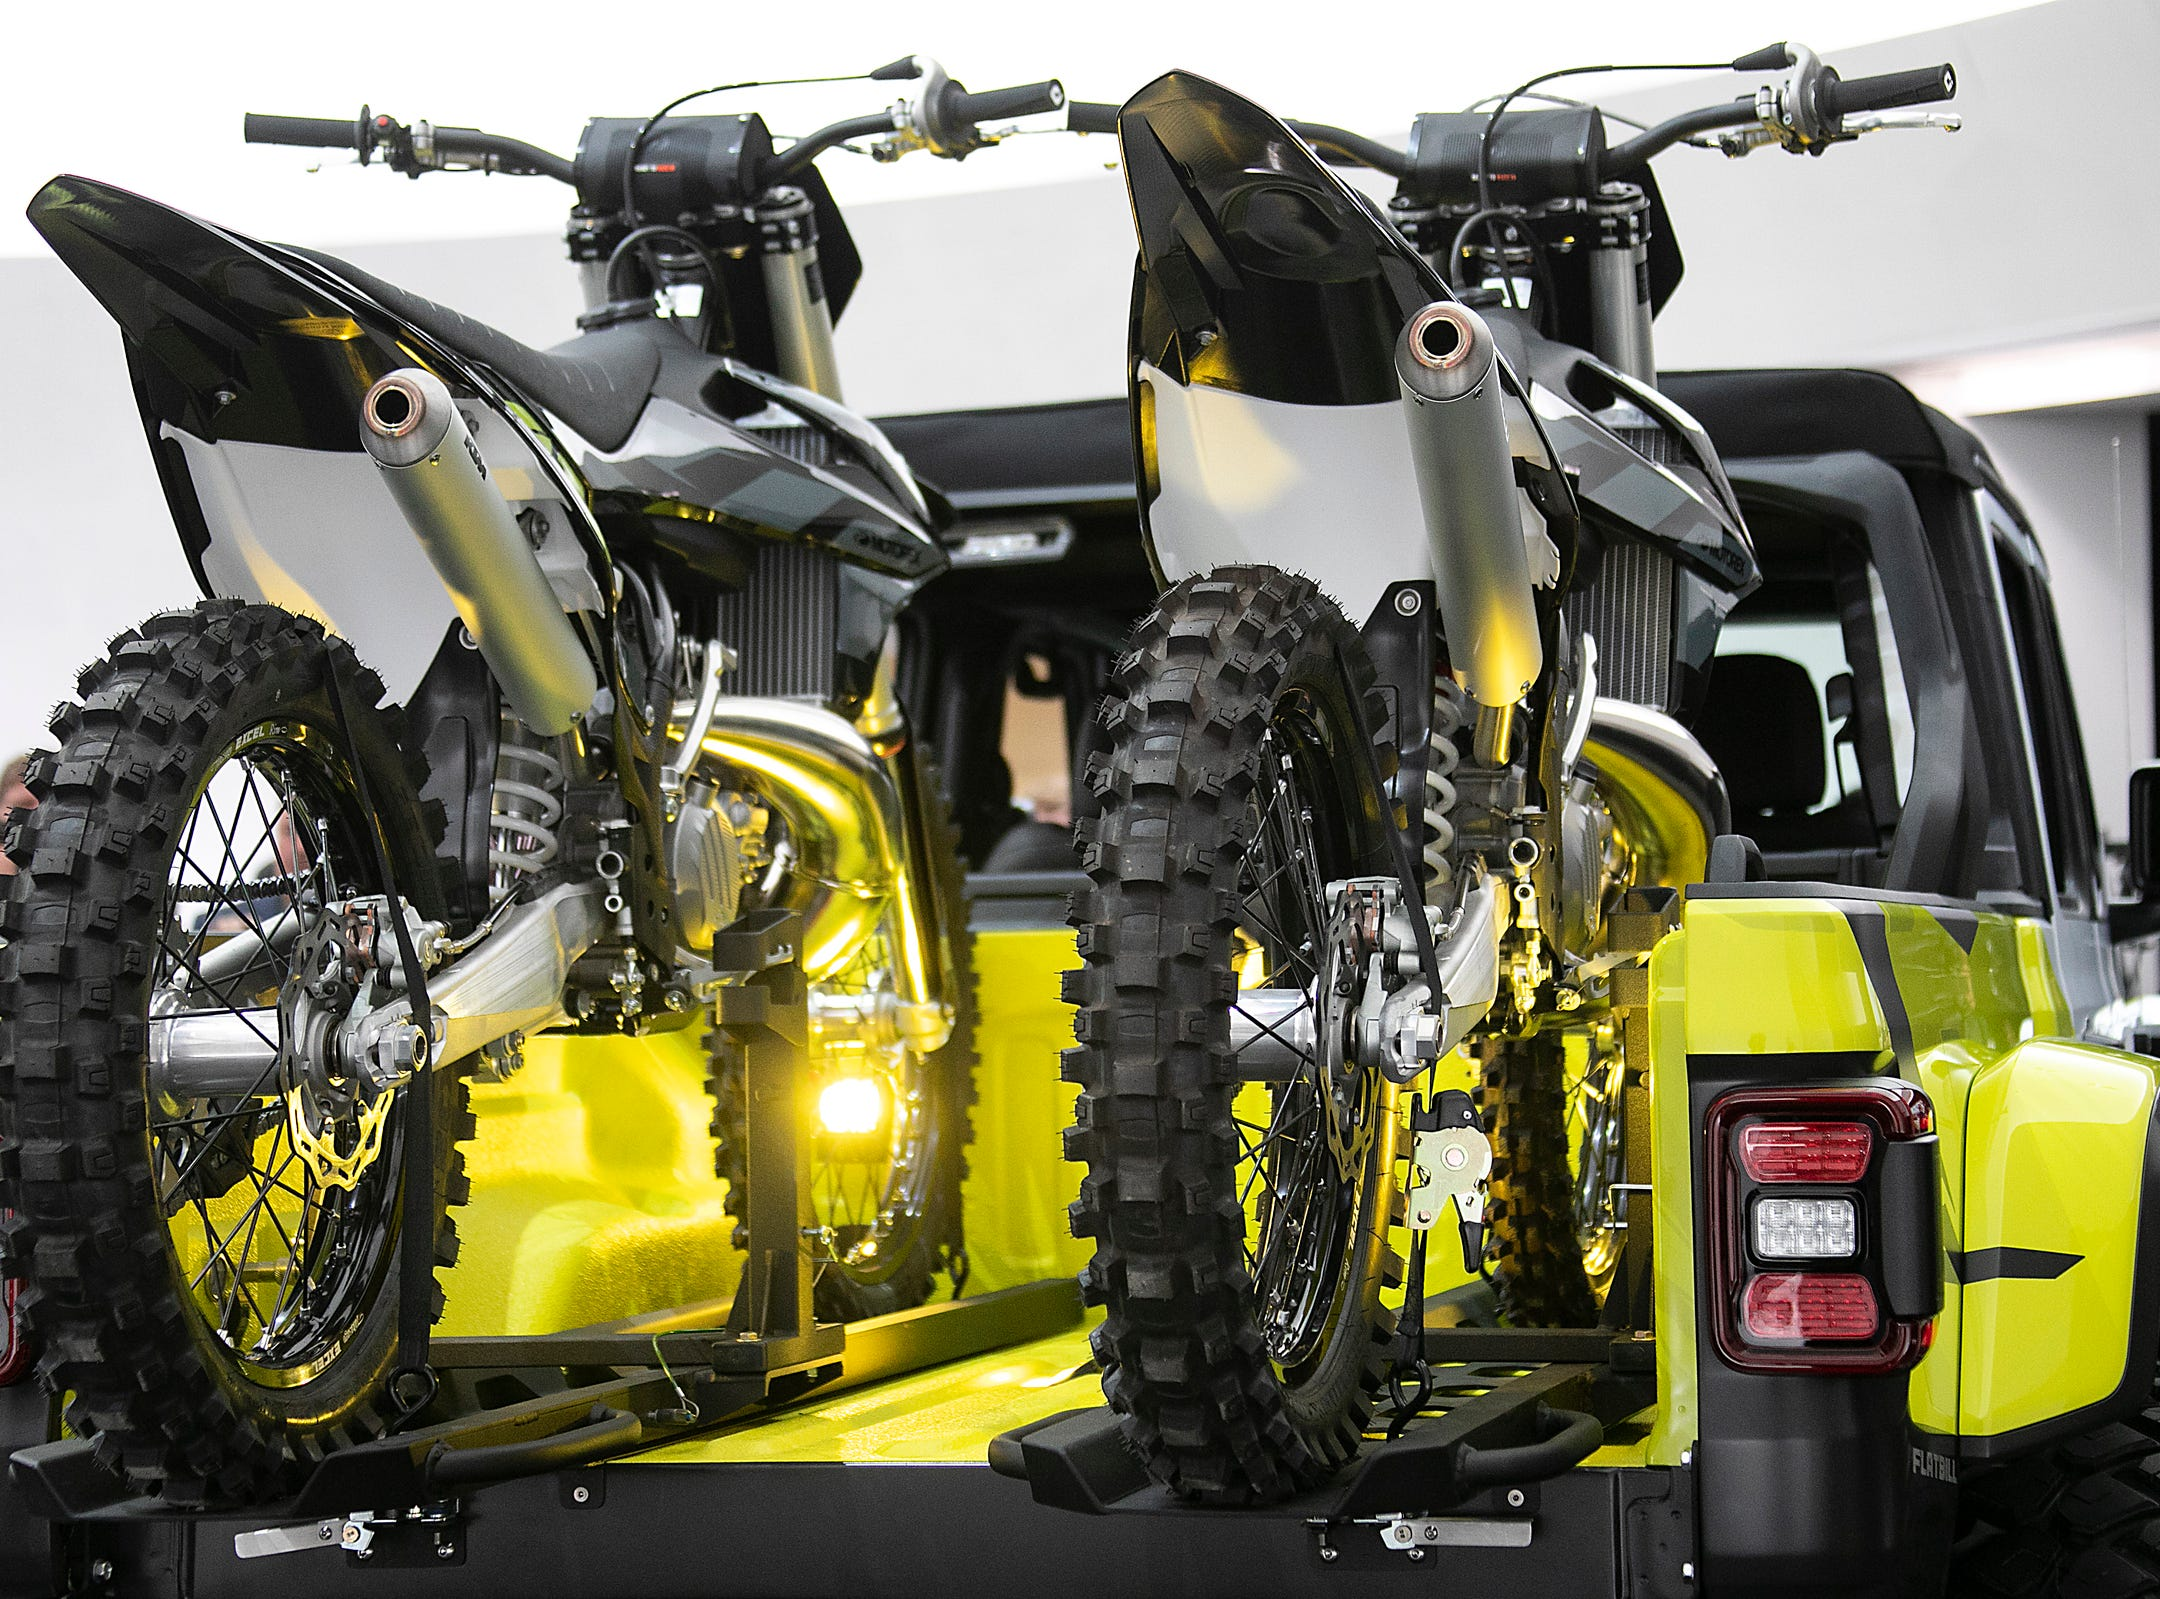 Jeep and Mopar brands debut six concept vehicles including the Jeep Flatbill Friday, April 5, 2019 at the Fiat Chrysler Tech Center and headquarters for the 53rd annual Moab Easter Jeep Safari. The Jeep Flatbill is a truck dedicated to dirt bike riding it is powered by a 3.6-liter  Pentastar V-6 engine with a cold-air Mopar Intake and mated to an eight-speed automatic transmission.